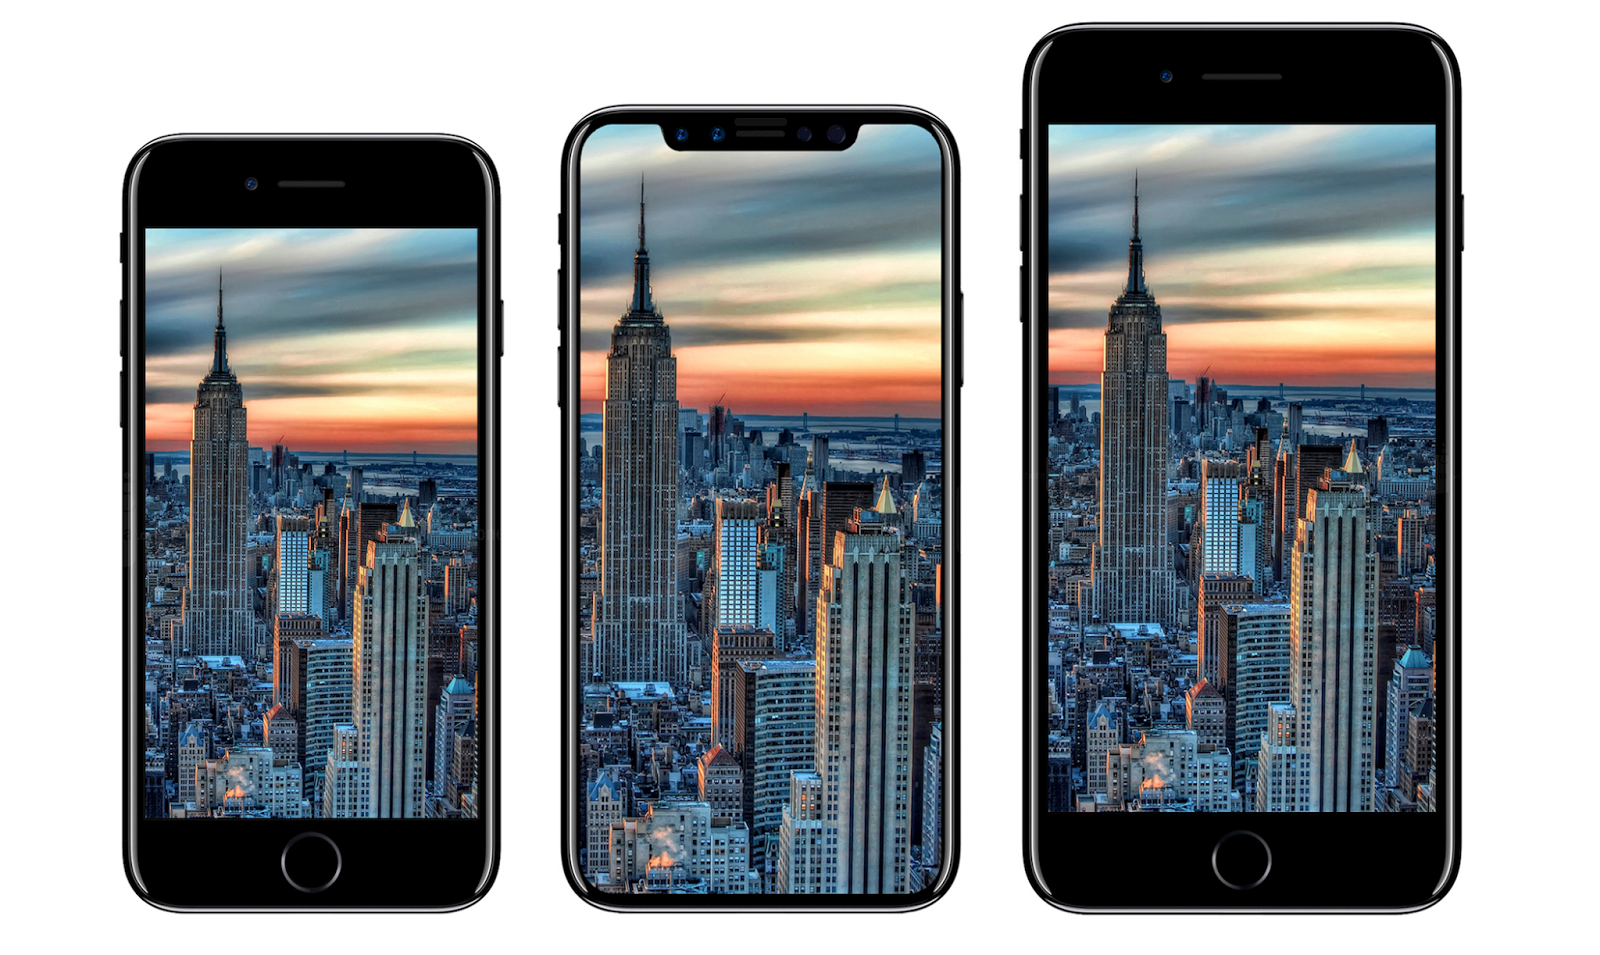 We compare the three new iPhones – X, 8 and 8 Plus!